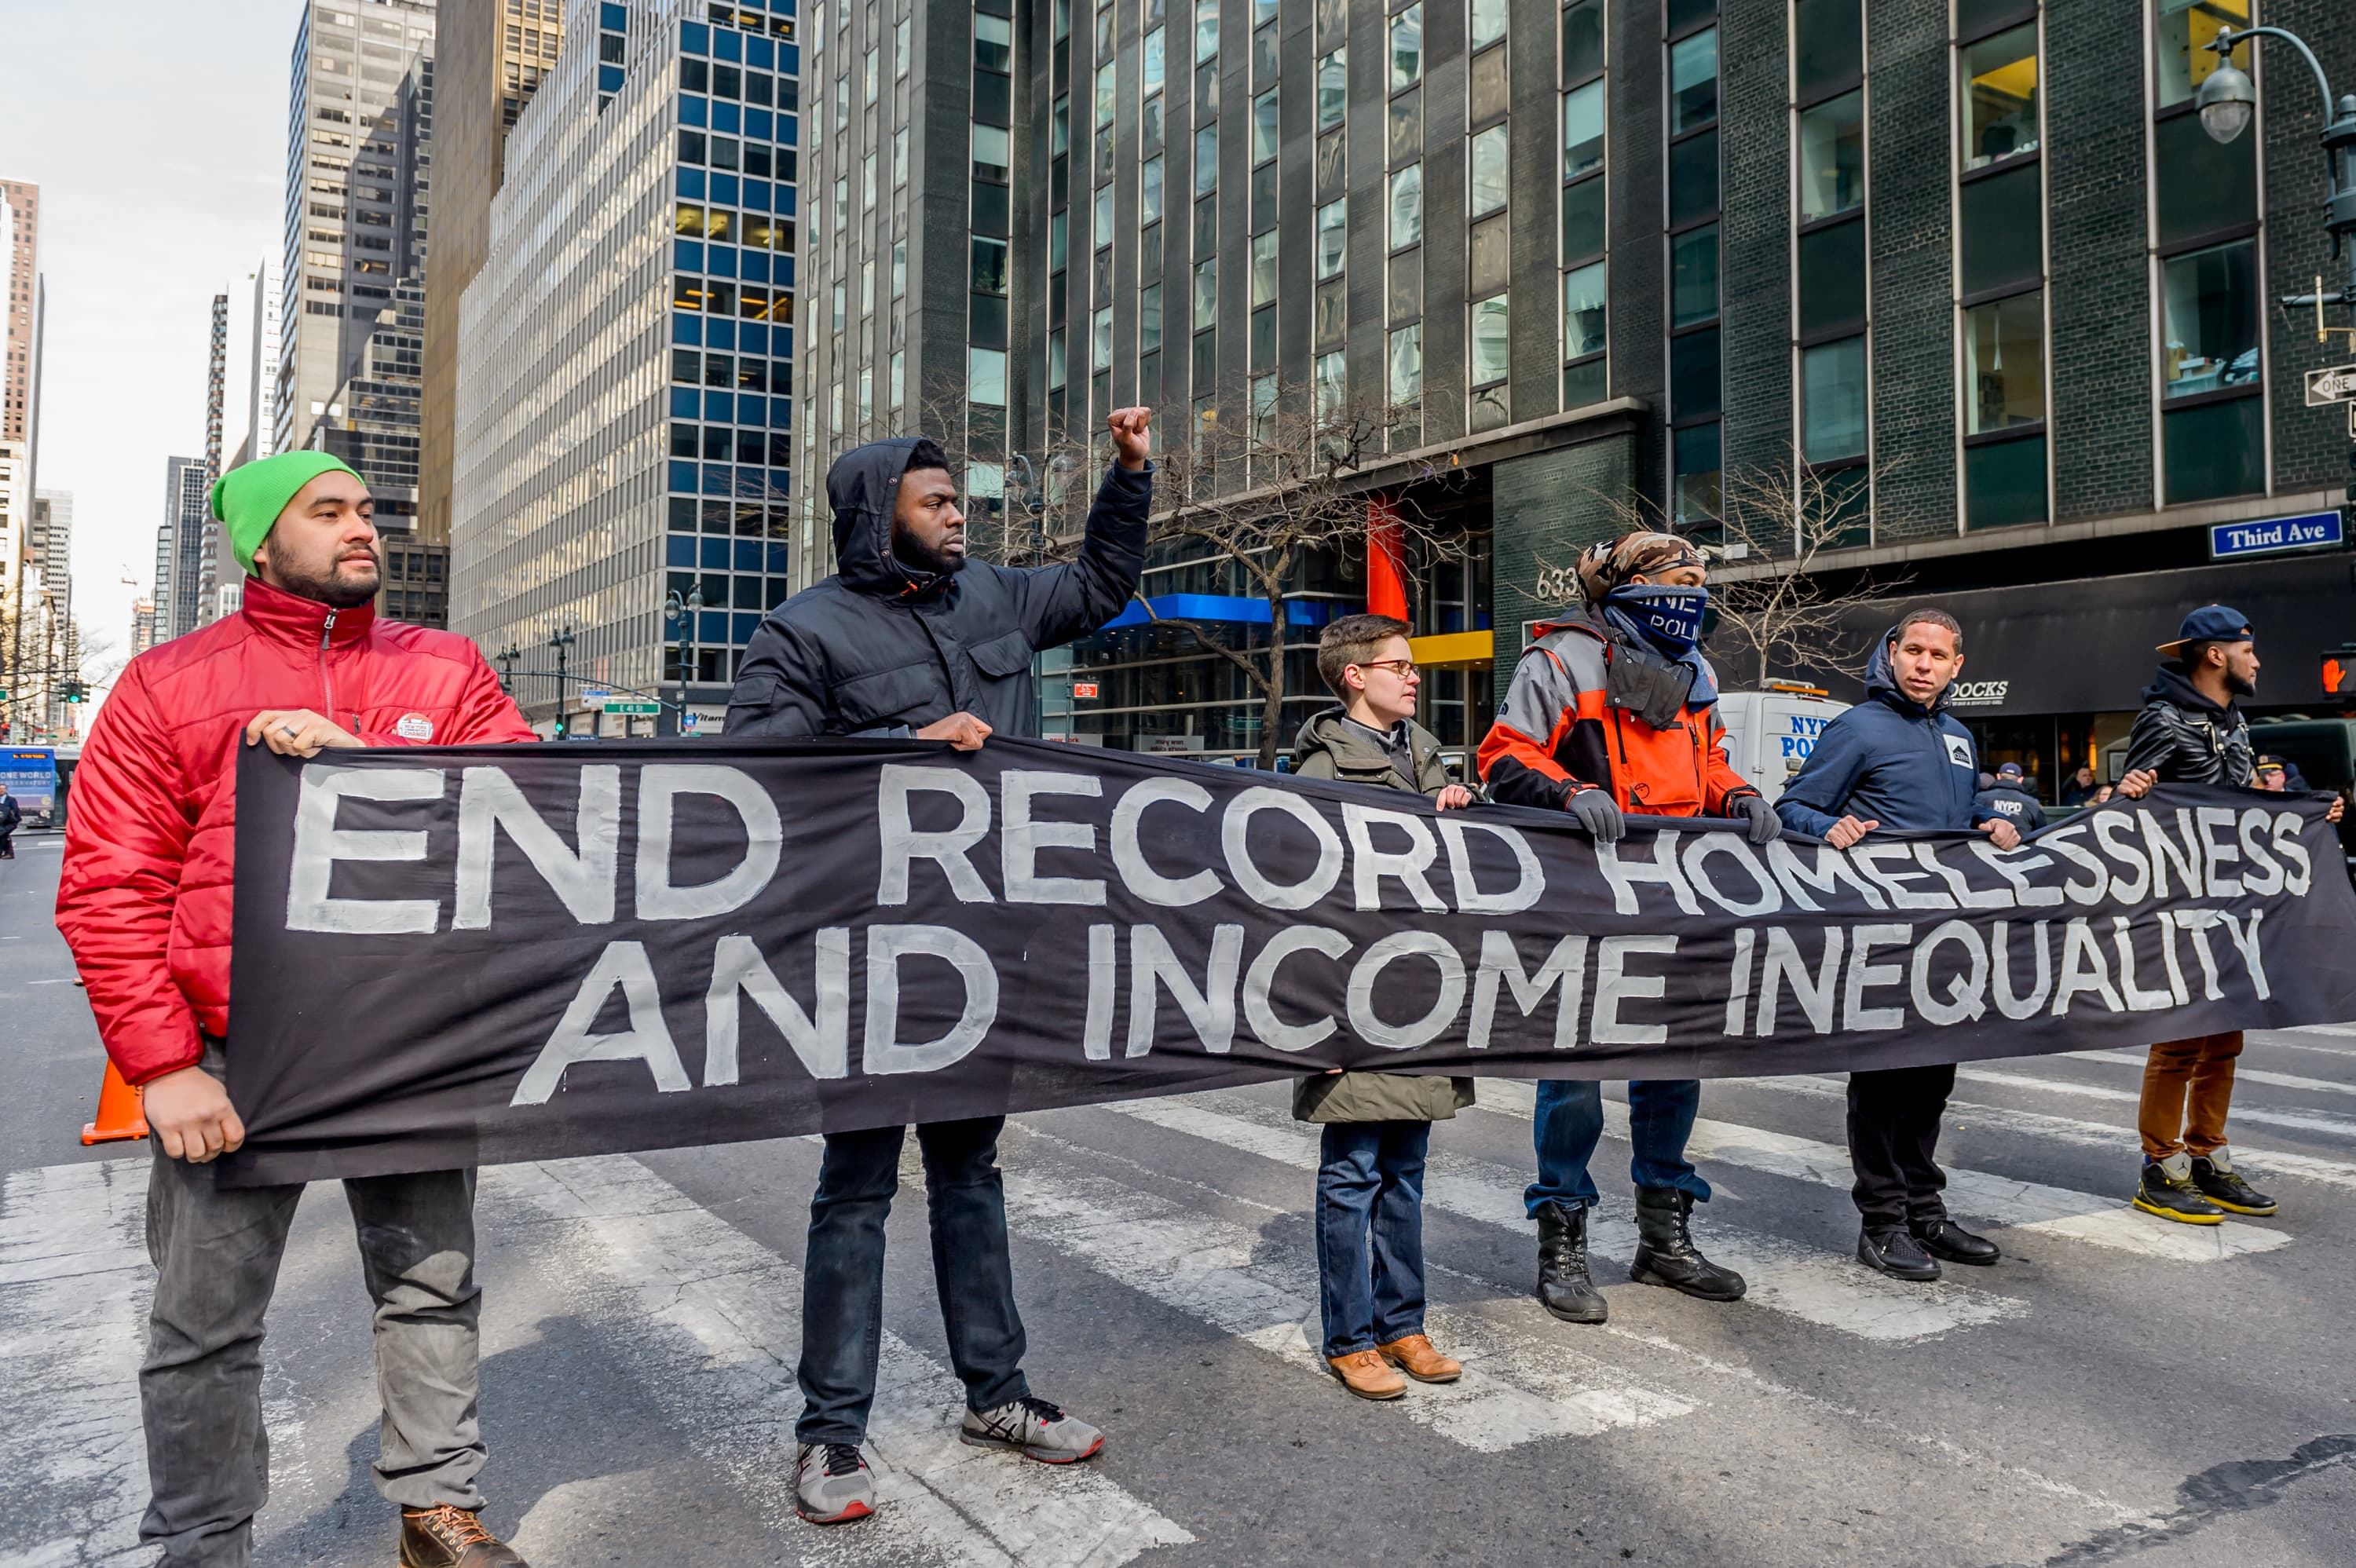 5 ways to fight wealth inequality, according to economists